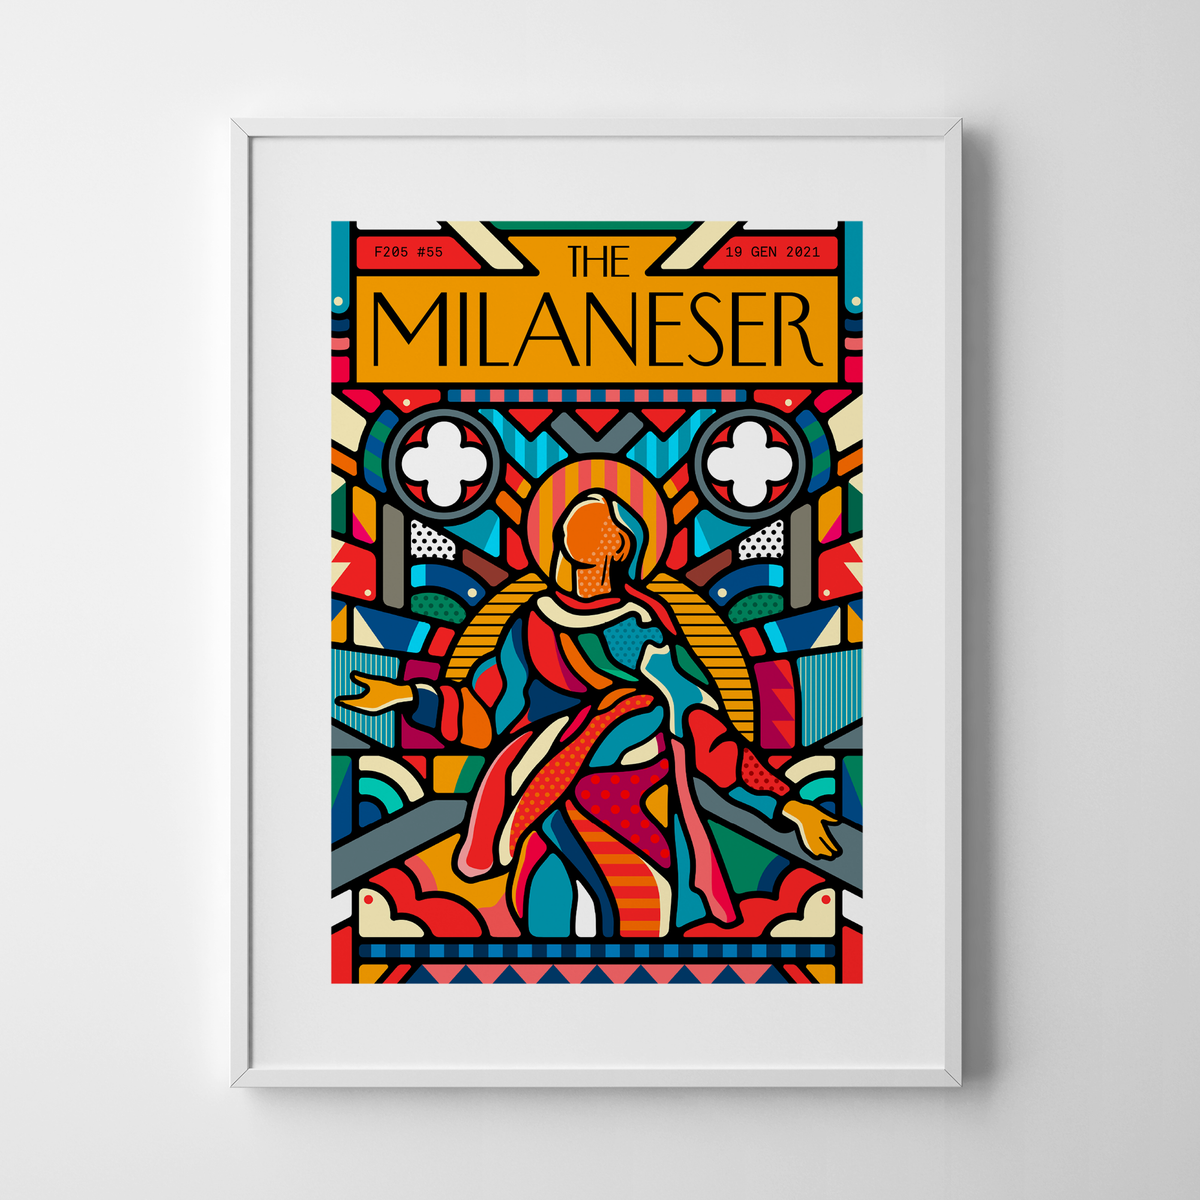 Image of The Milaneser #55